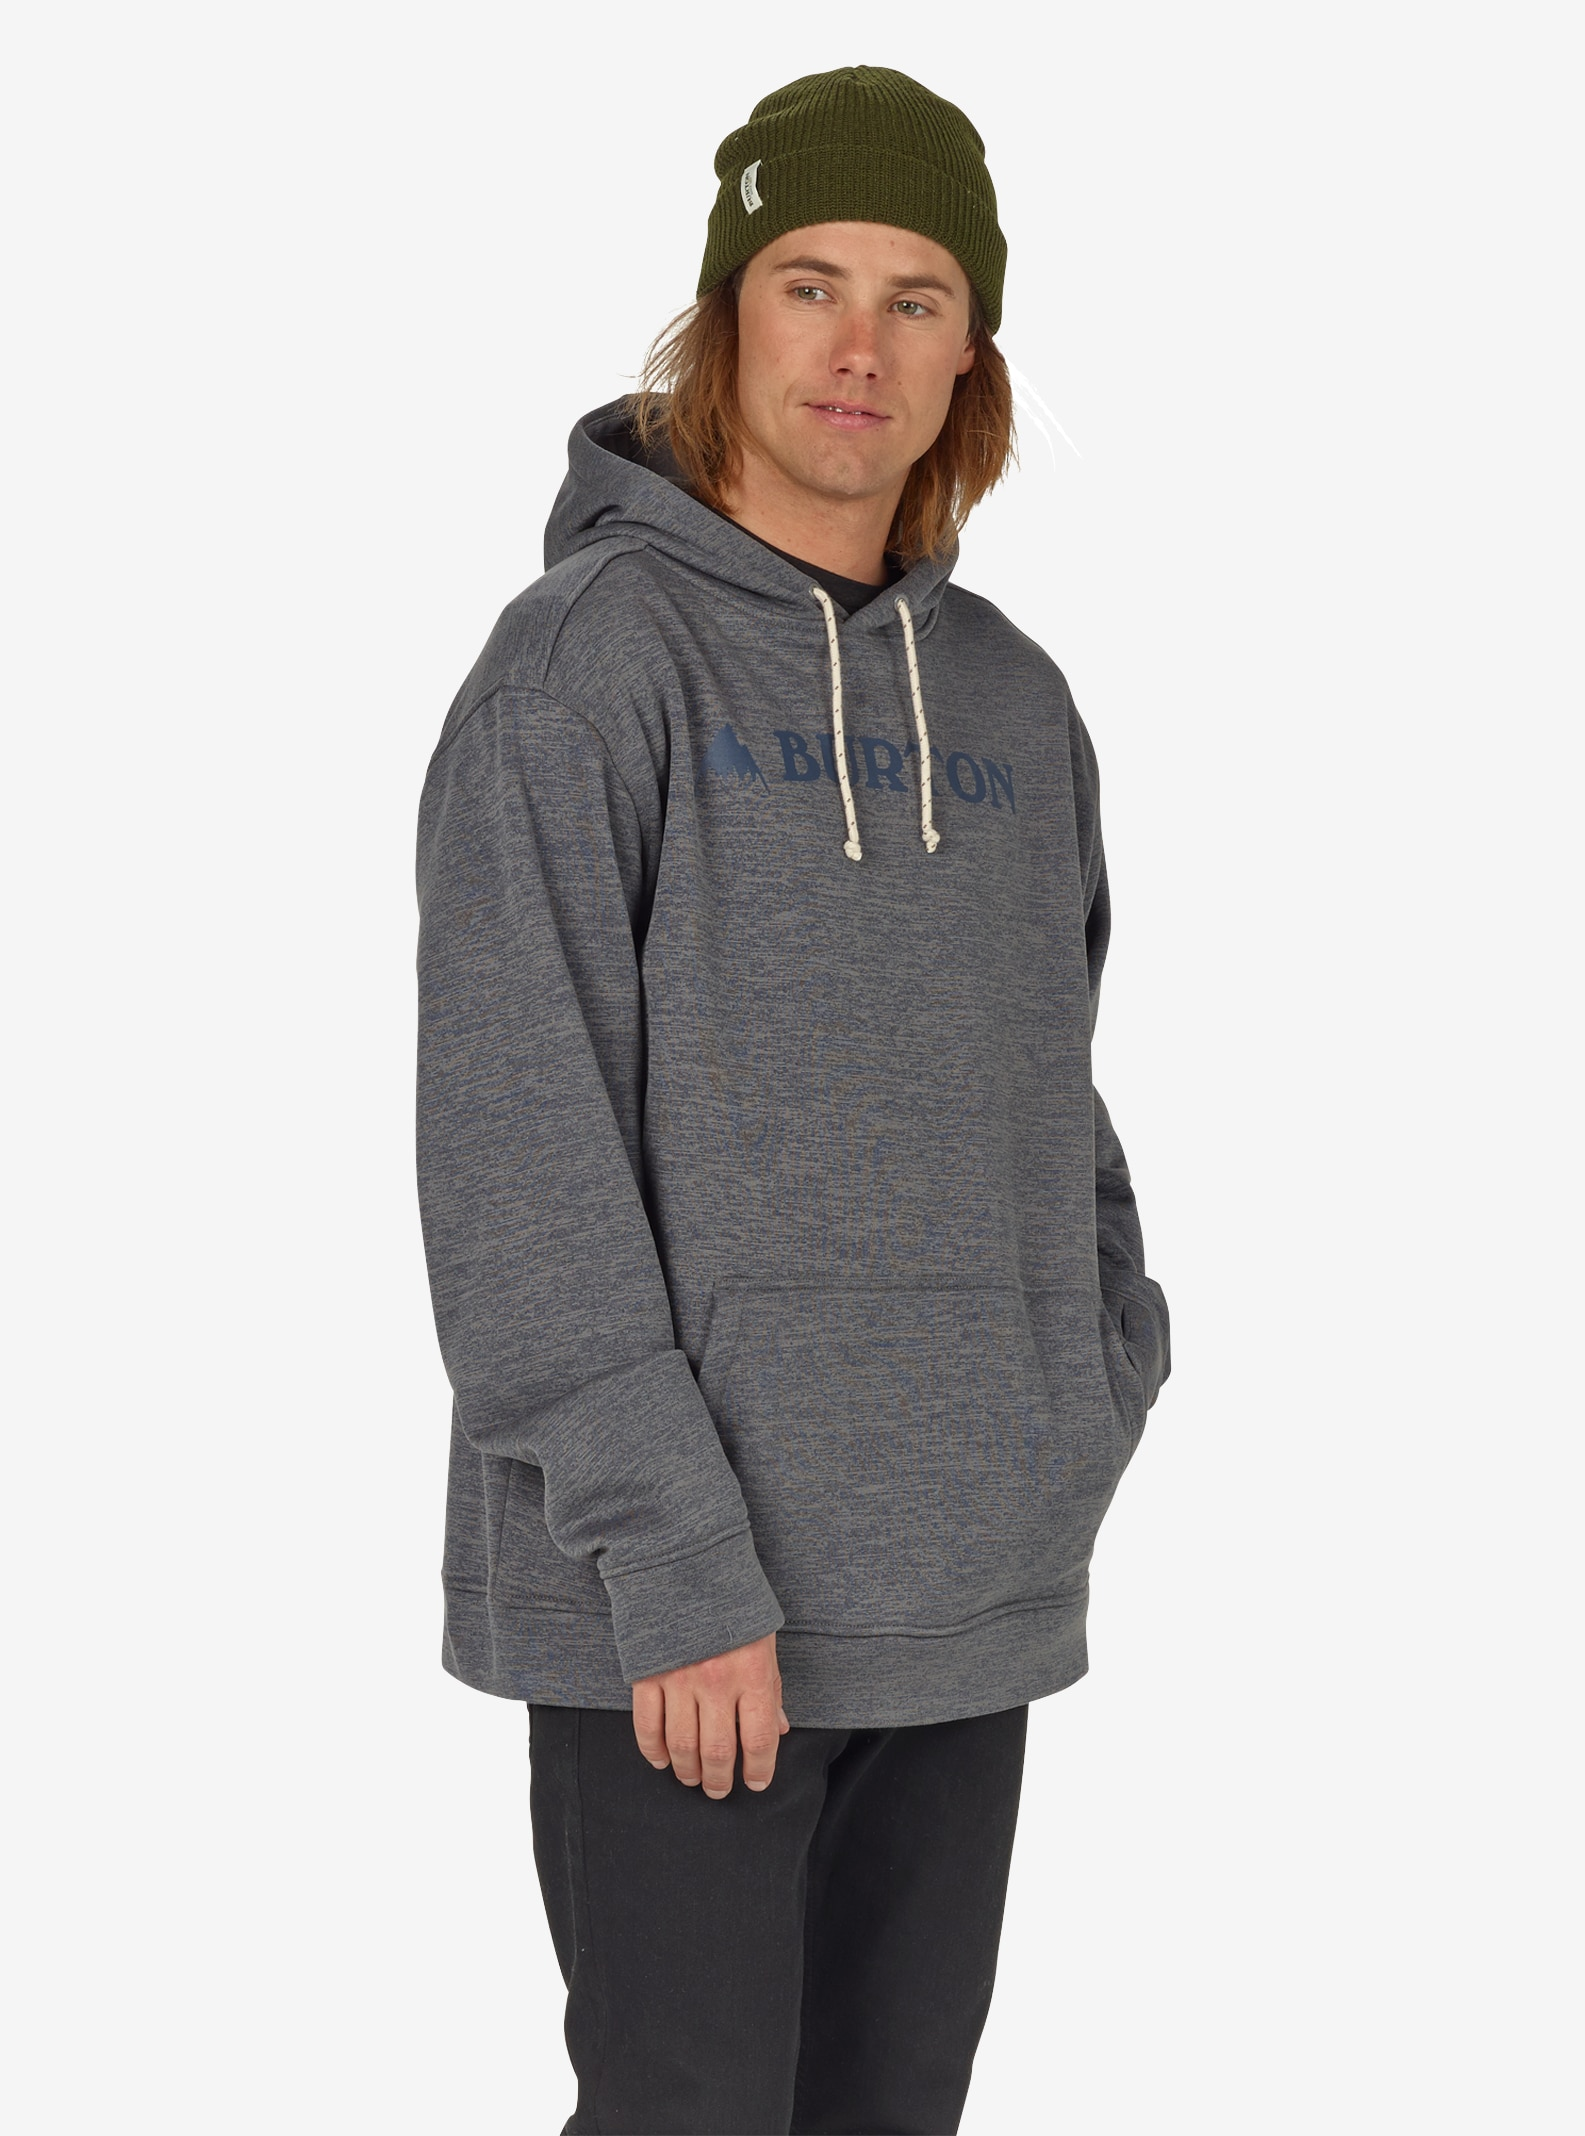 Men's Burton Oak Pullover Hoodie shown in Shade Heather